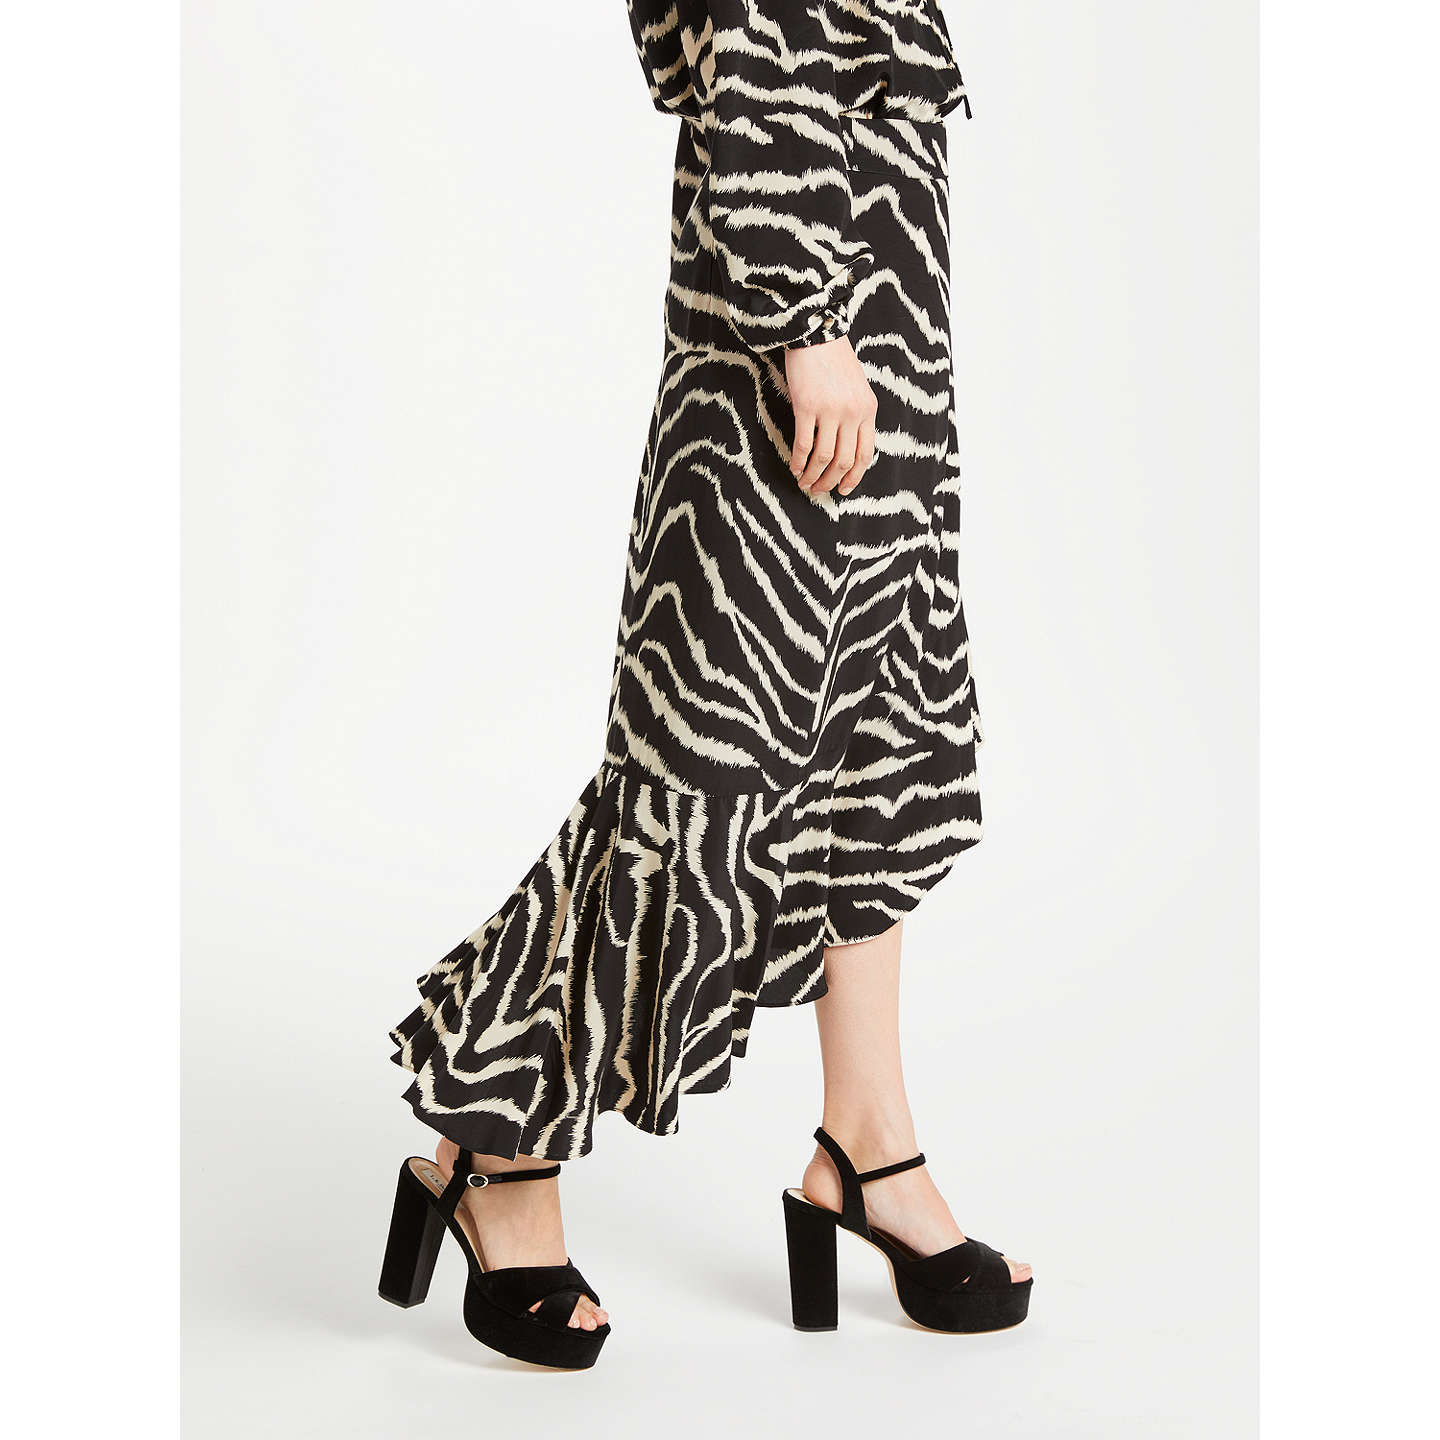 BuySomerset by Alice Temperley Zebra Ruffle Skirt, Black, 8 Online at johnlewis.com